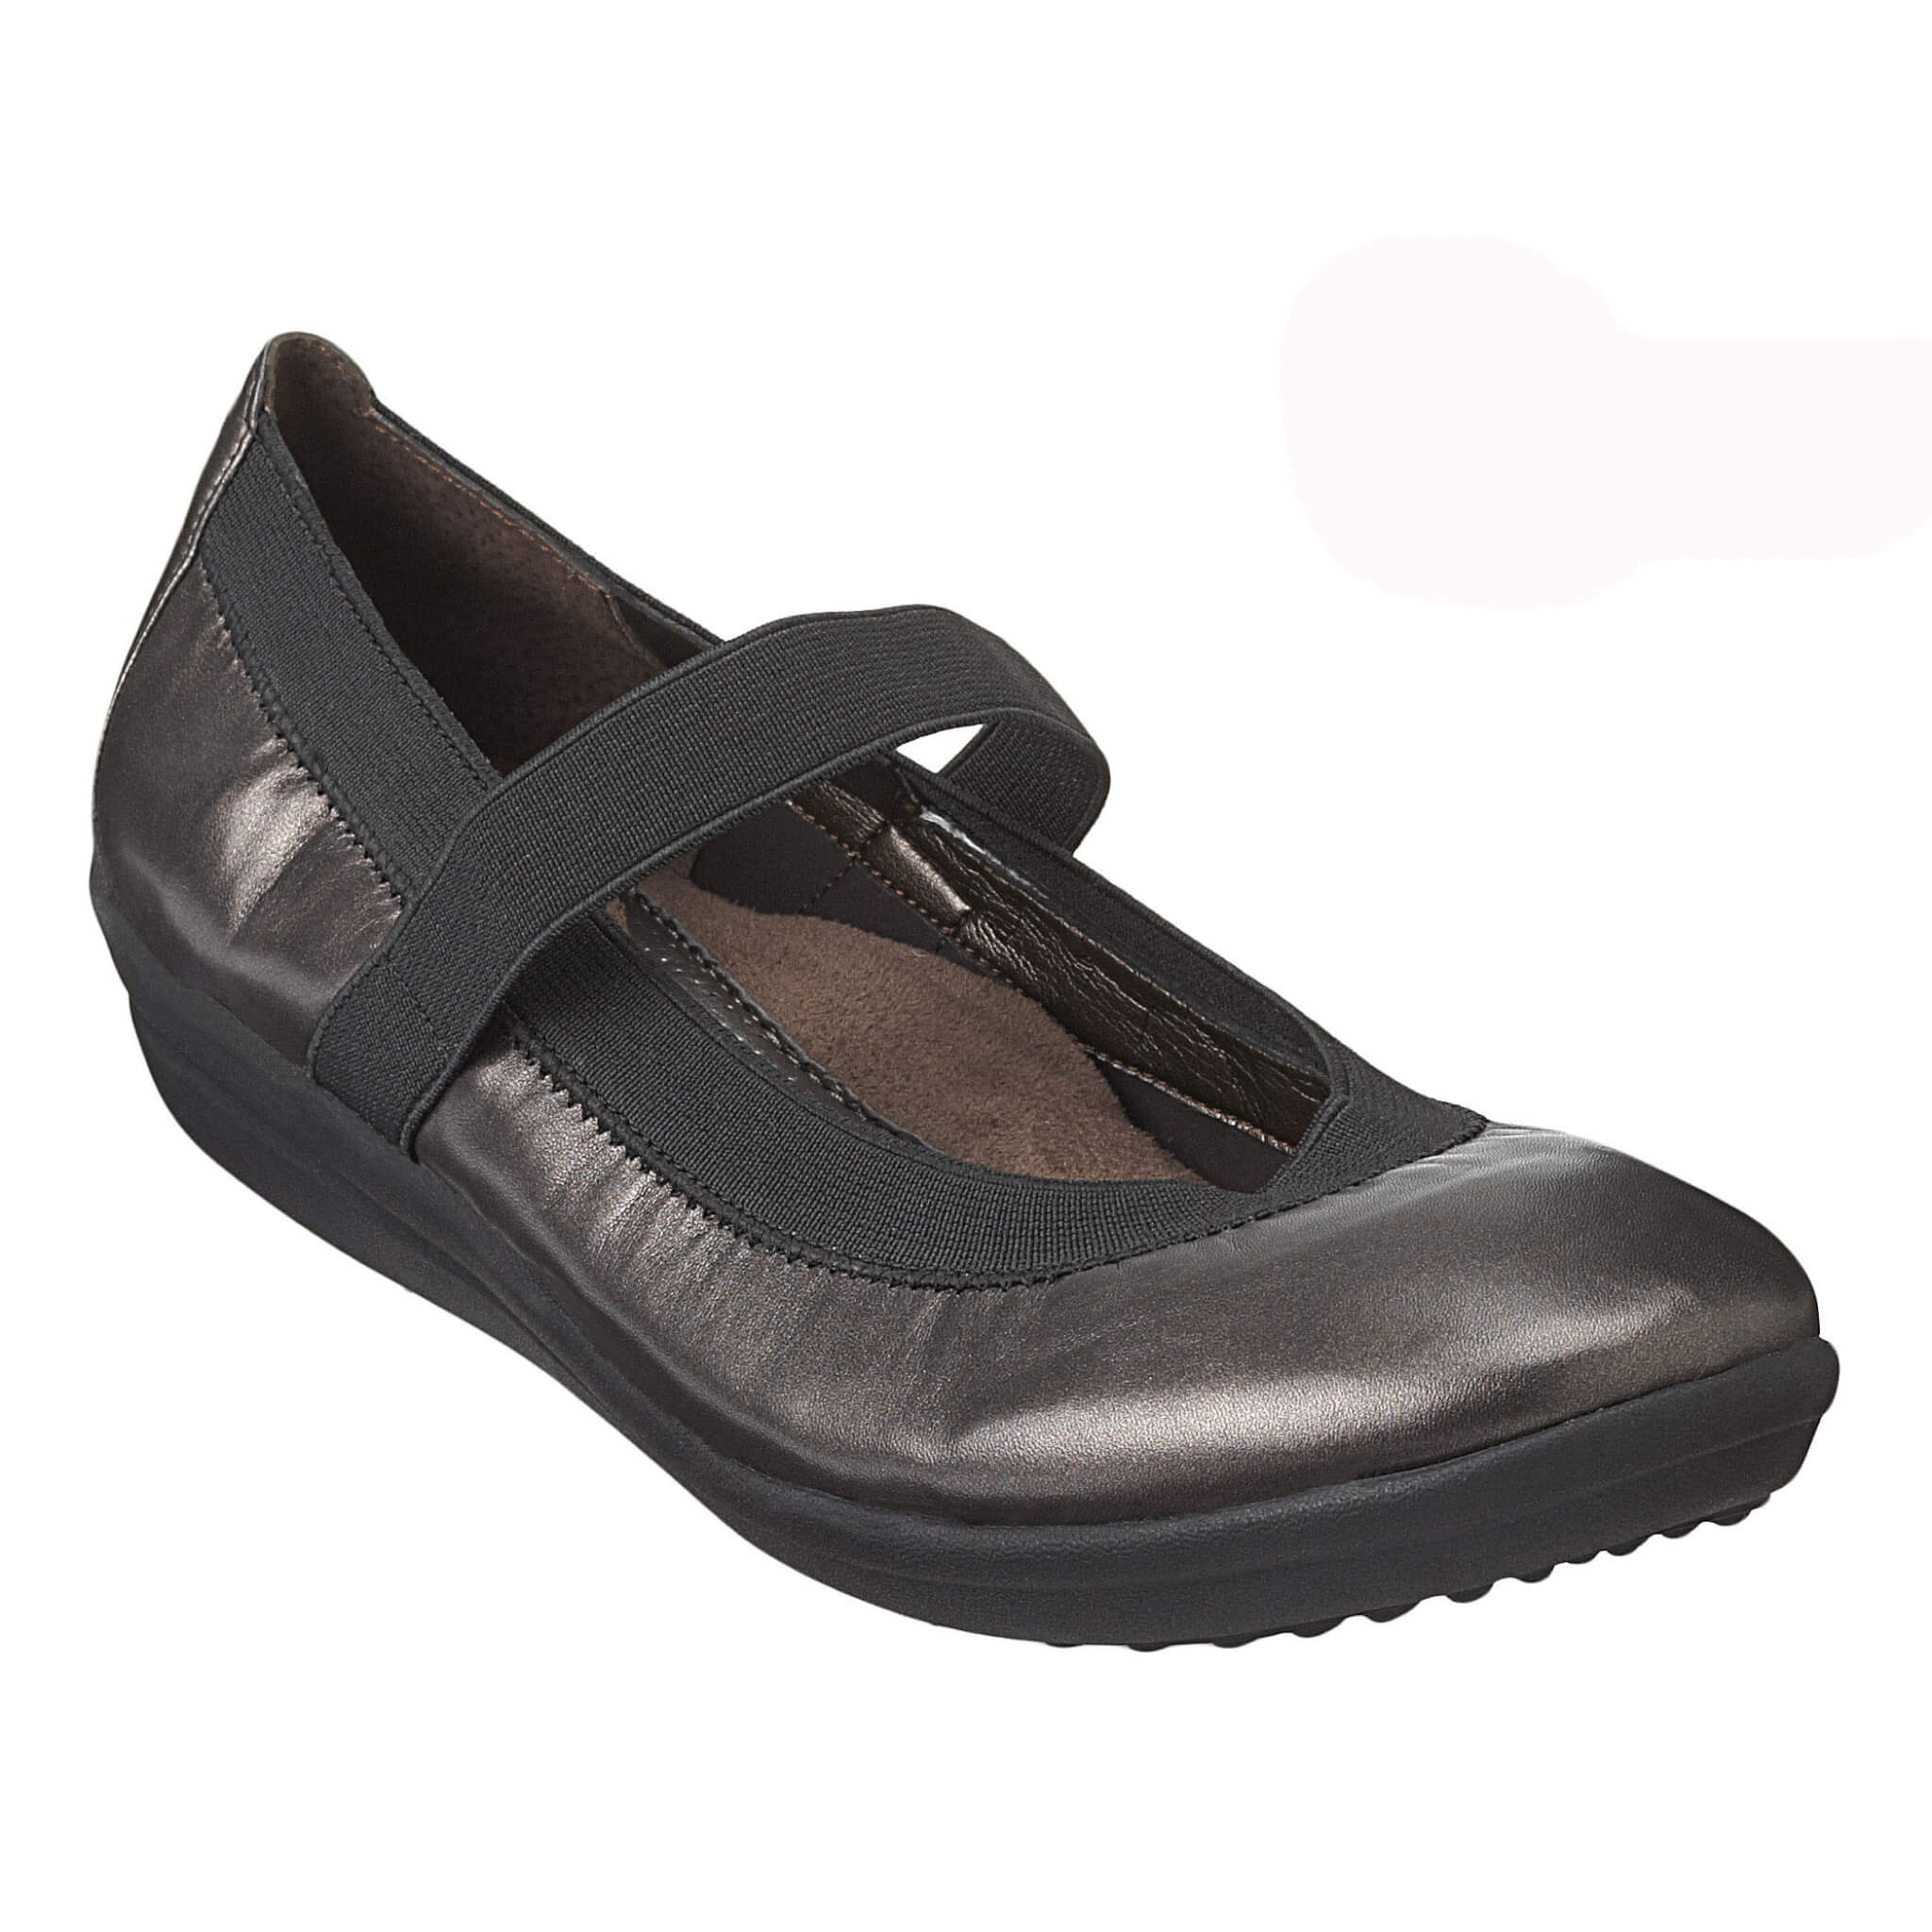 """Rabat"" Anti-Gravity shoe at EasySpirit.com"